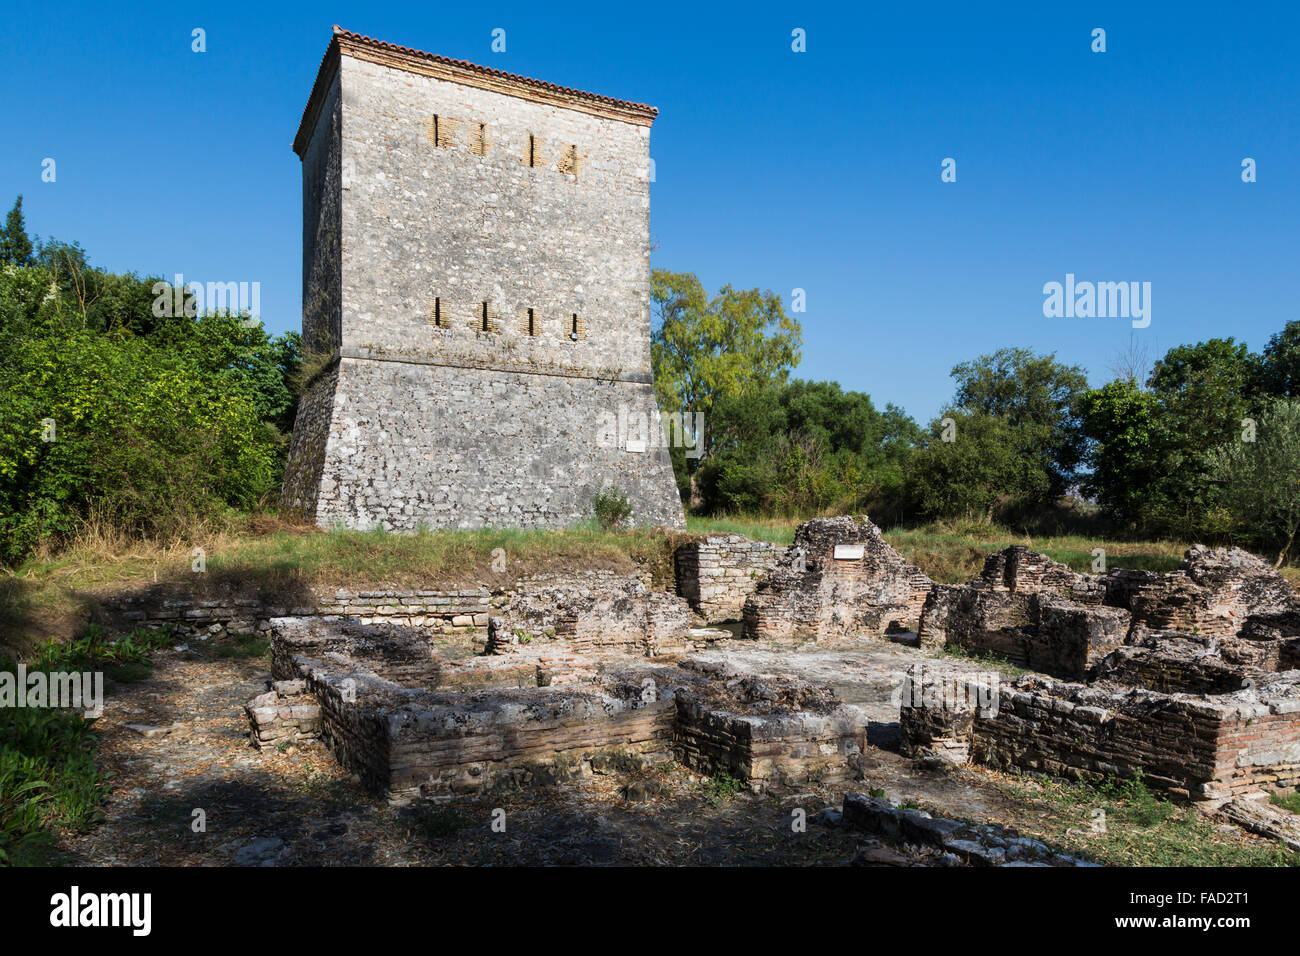 Albania.  Butrint or Buthrotum archeological site; a UNESCO World Heritage Site. The Venetian Tower. - Stock Image